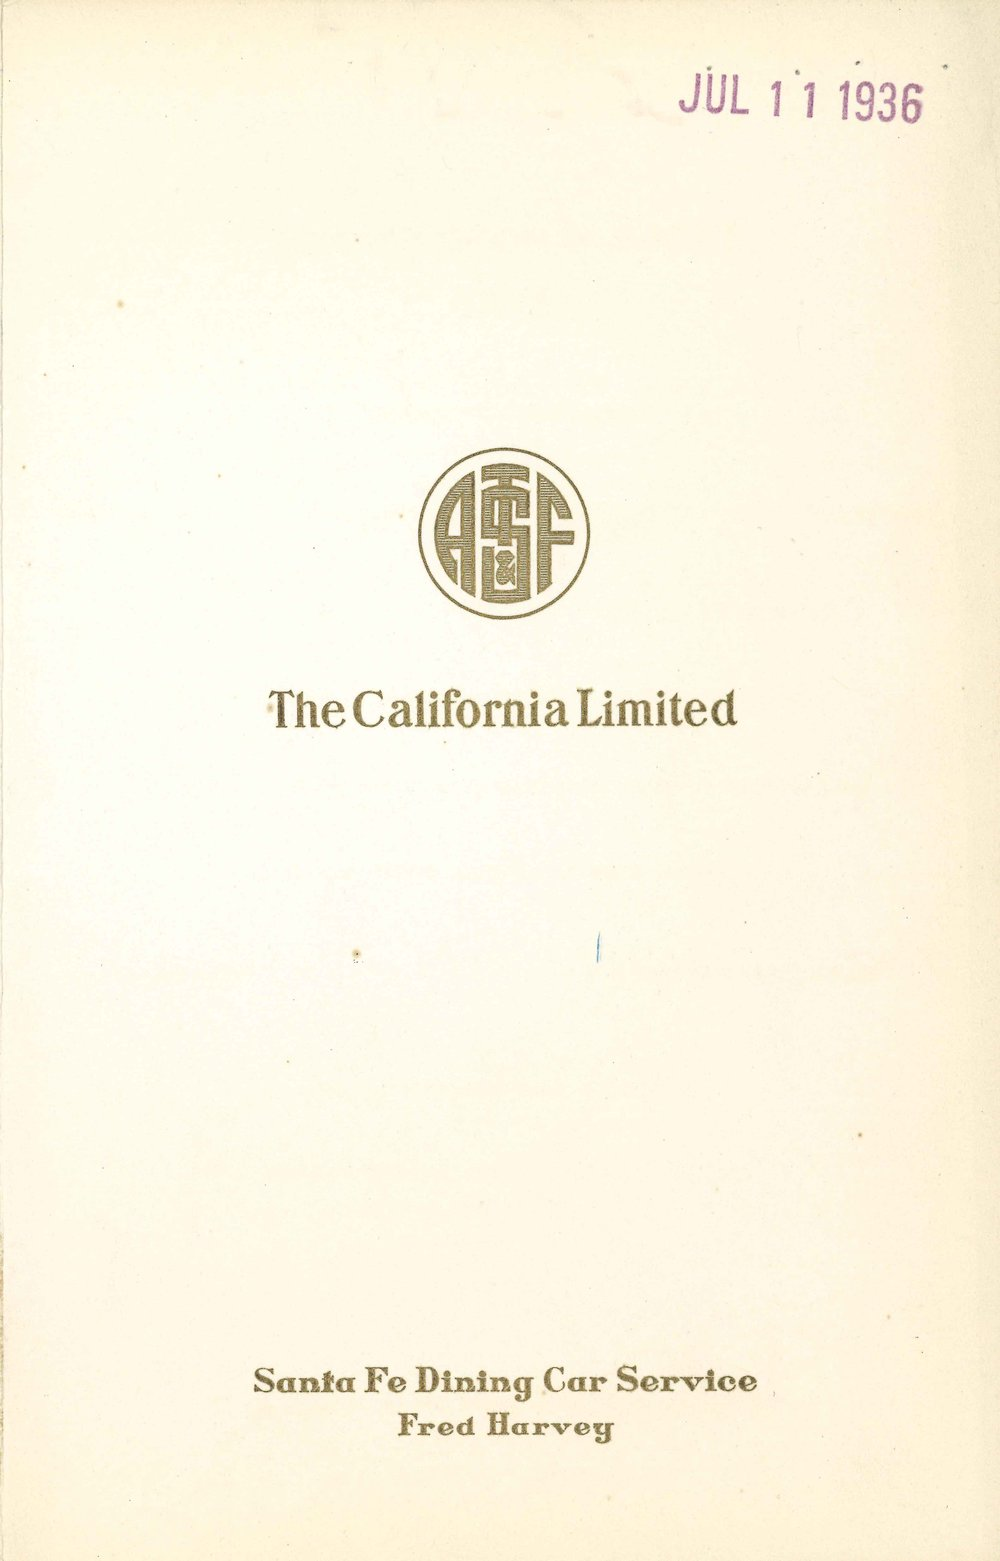 Santa Fe The California Limited July 1936 -1 small.jpg